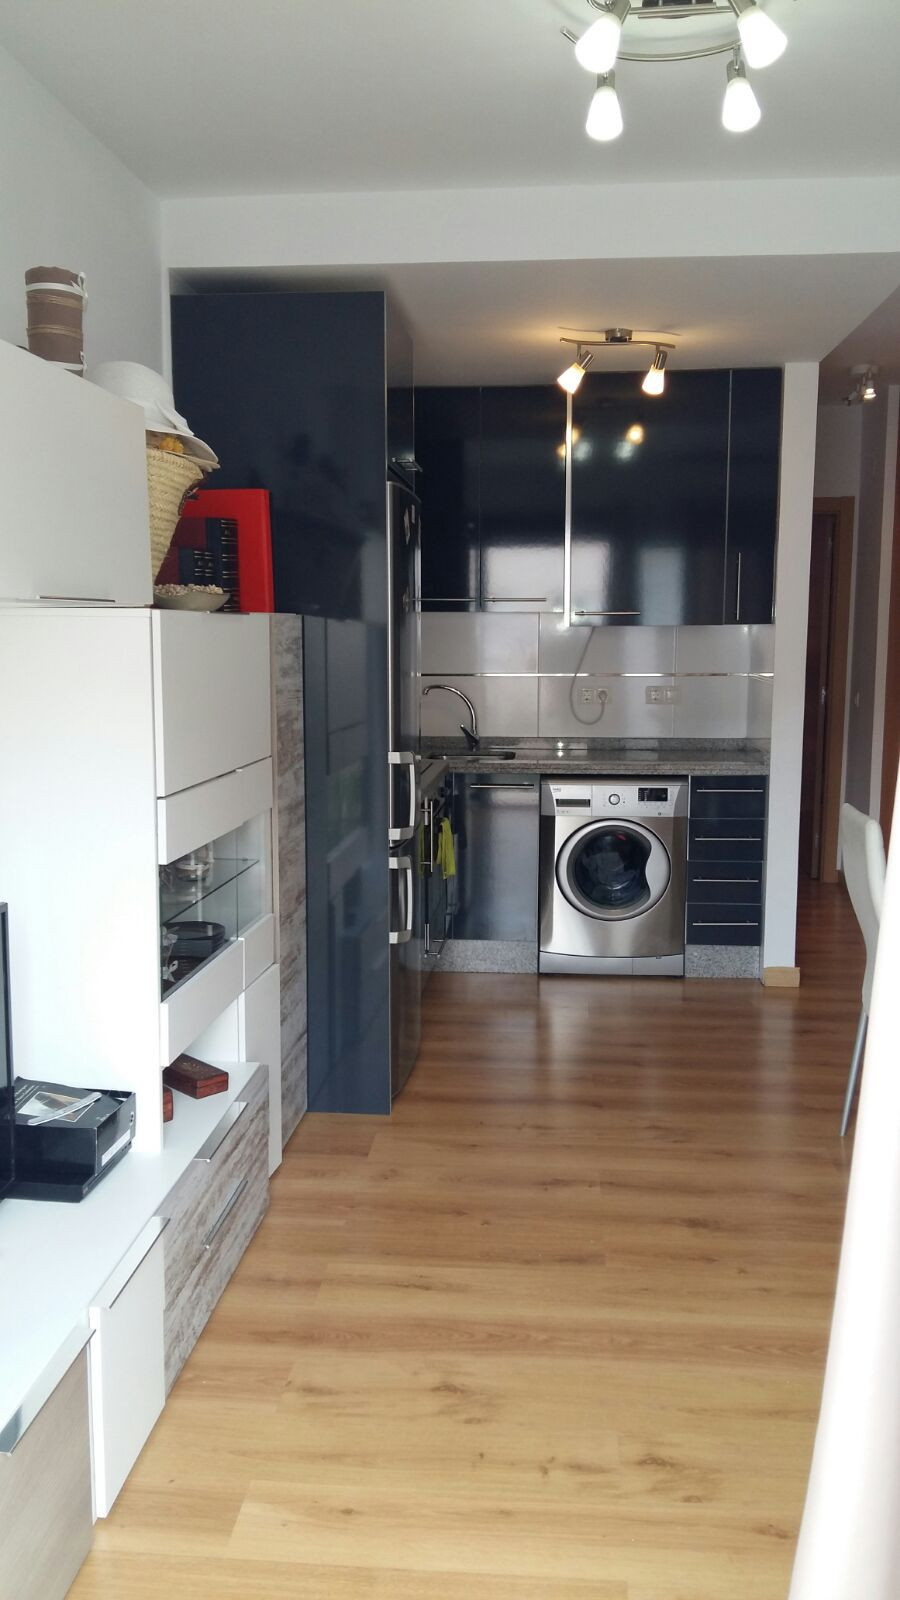 Great apartment, very bright, ideal for a young couple, to start a life together. The block consistsSpain